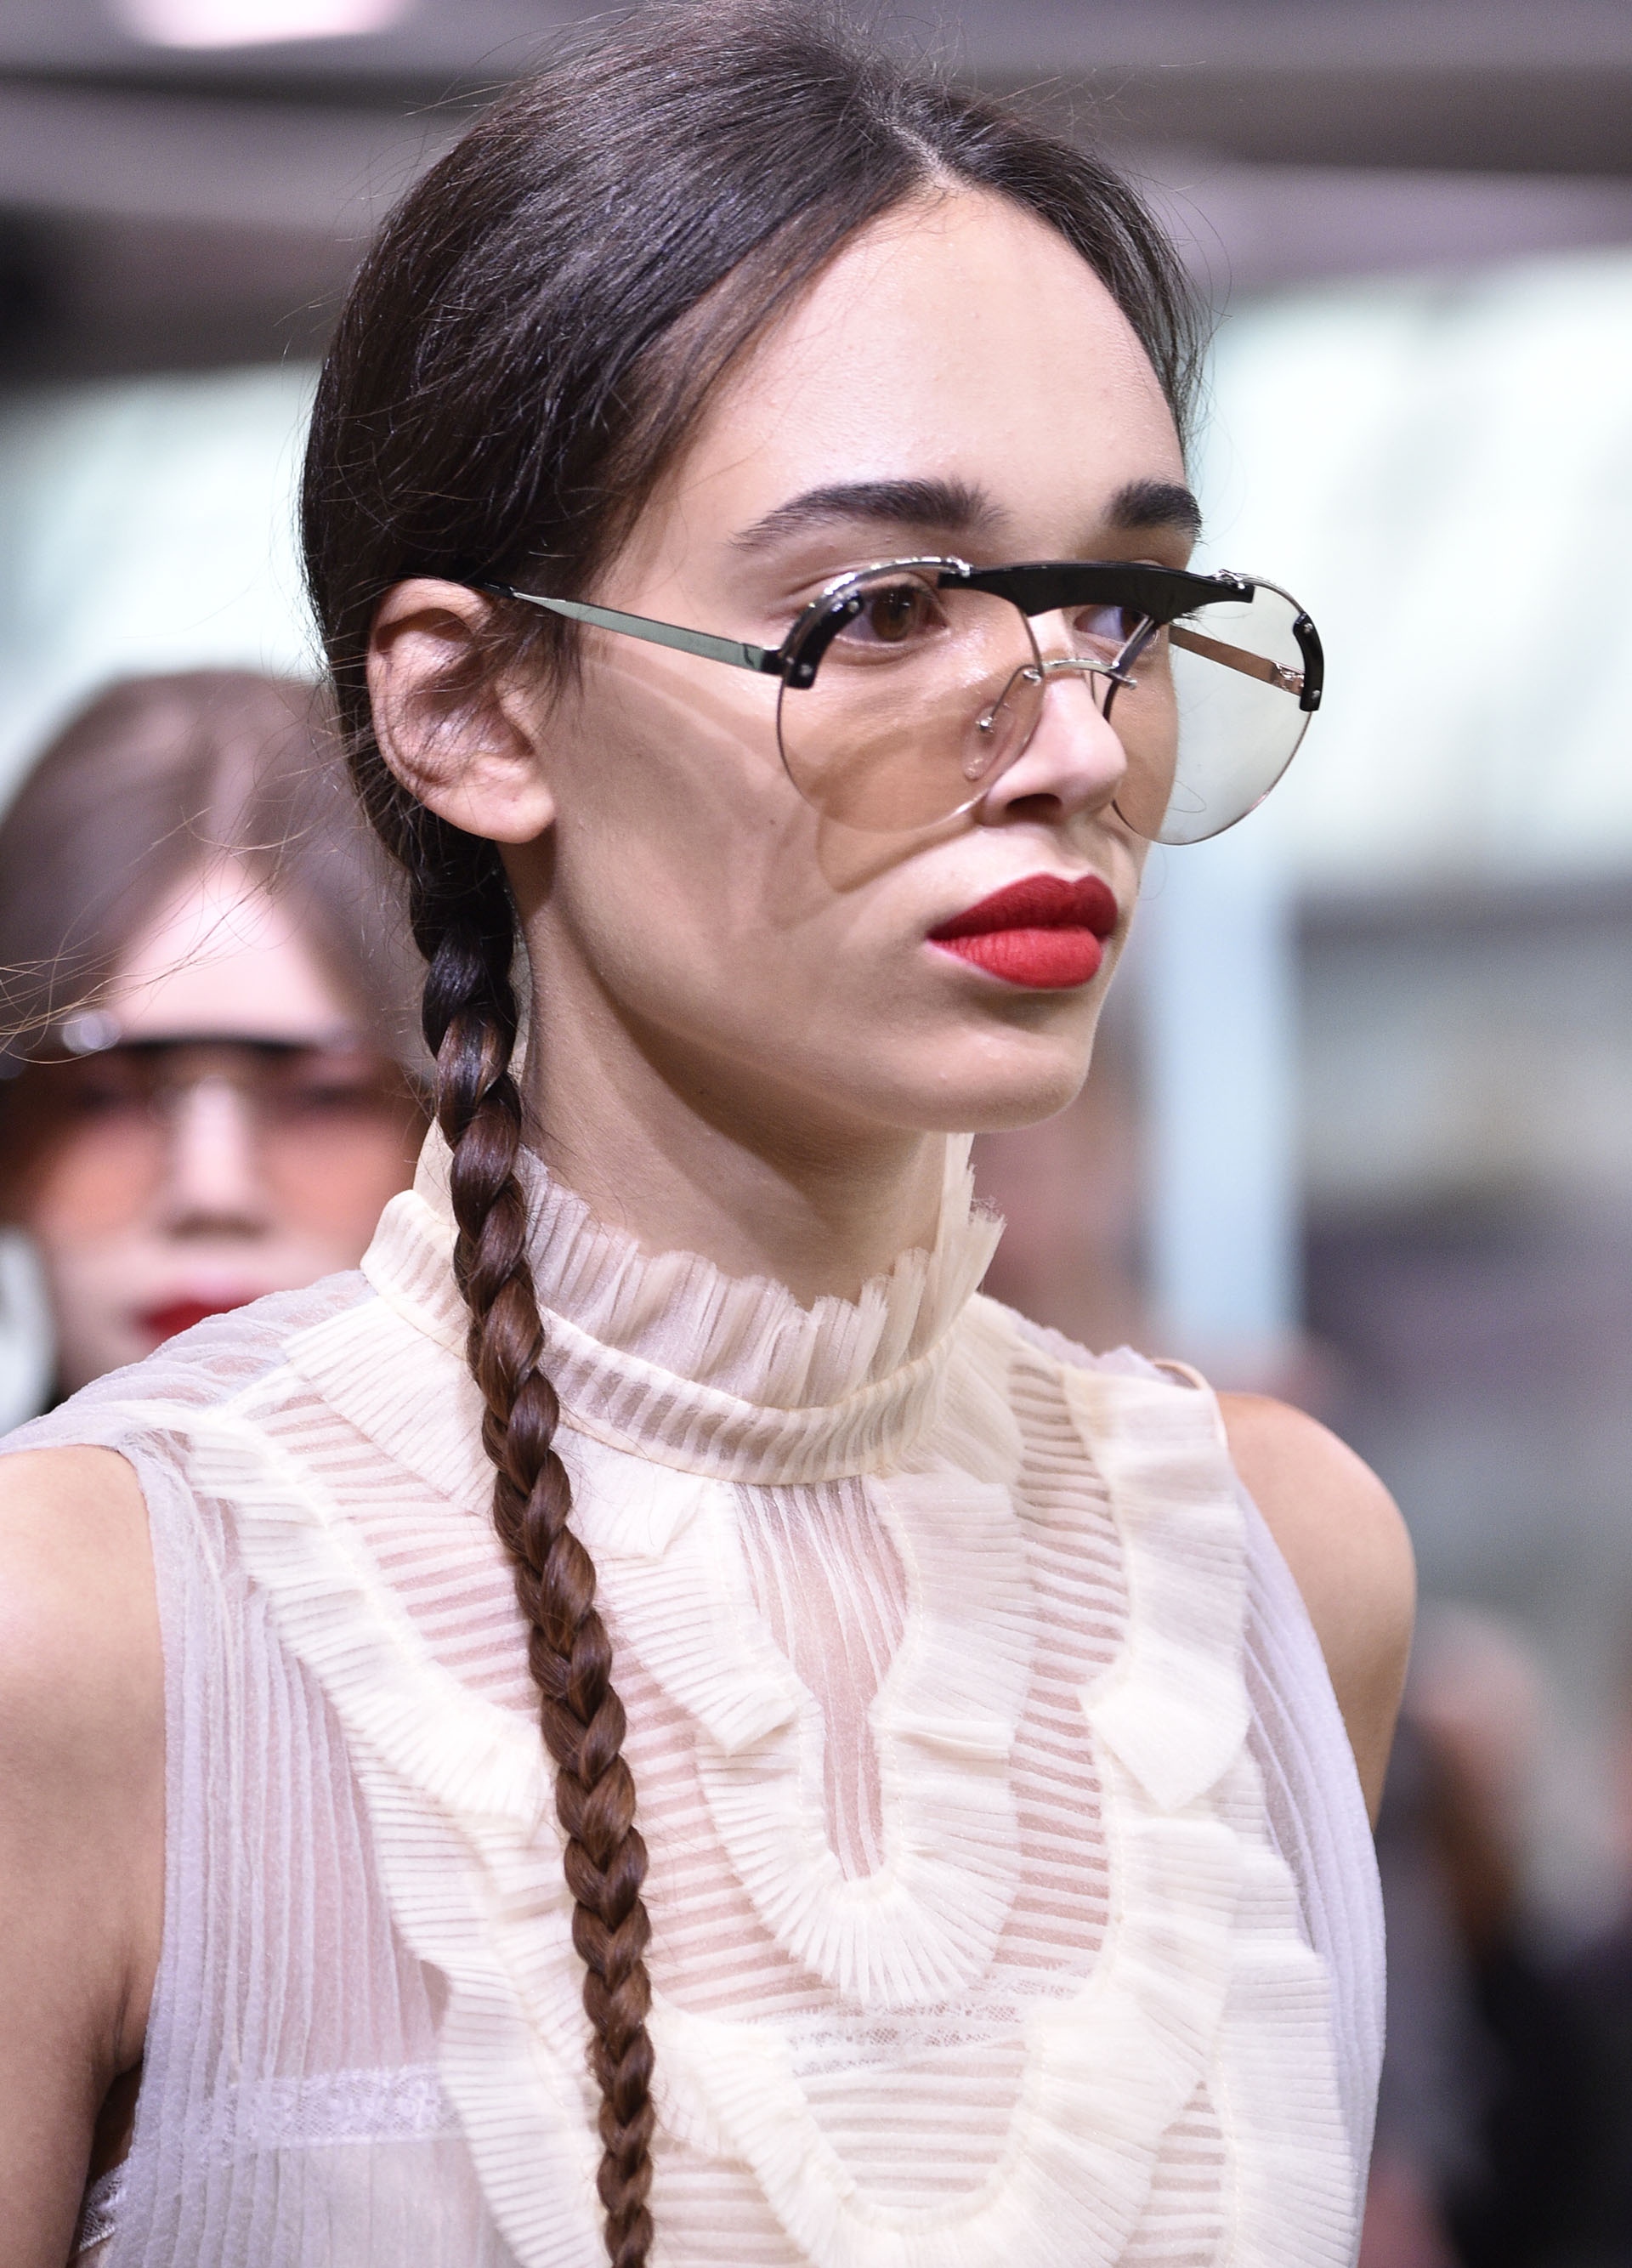 Los anteojos de lentes claras otro de los accesorios it de la temporada (Photo by Pietro D'Aprano/Getty Images)